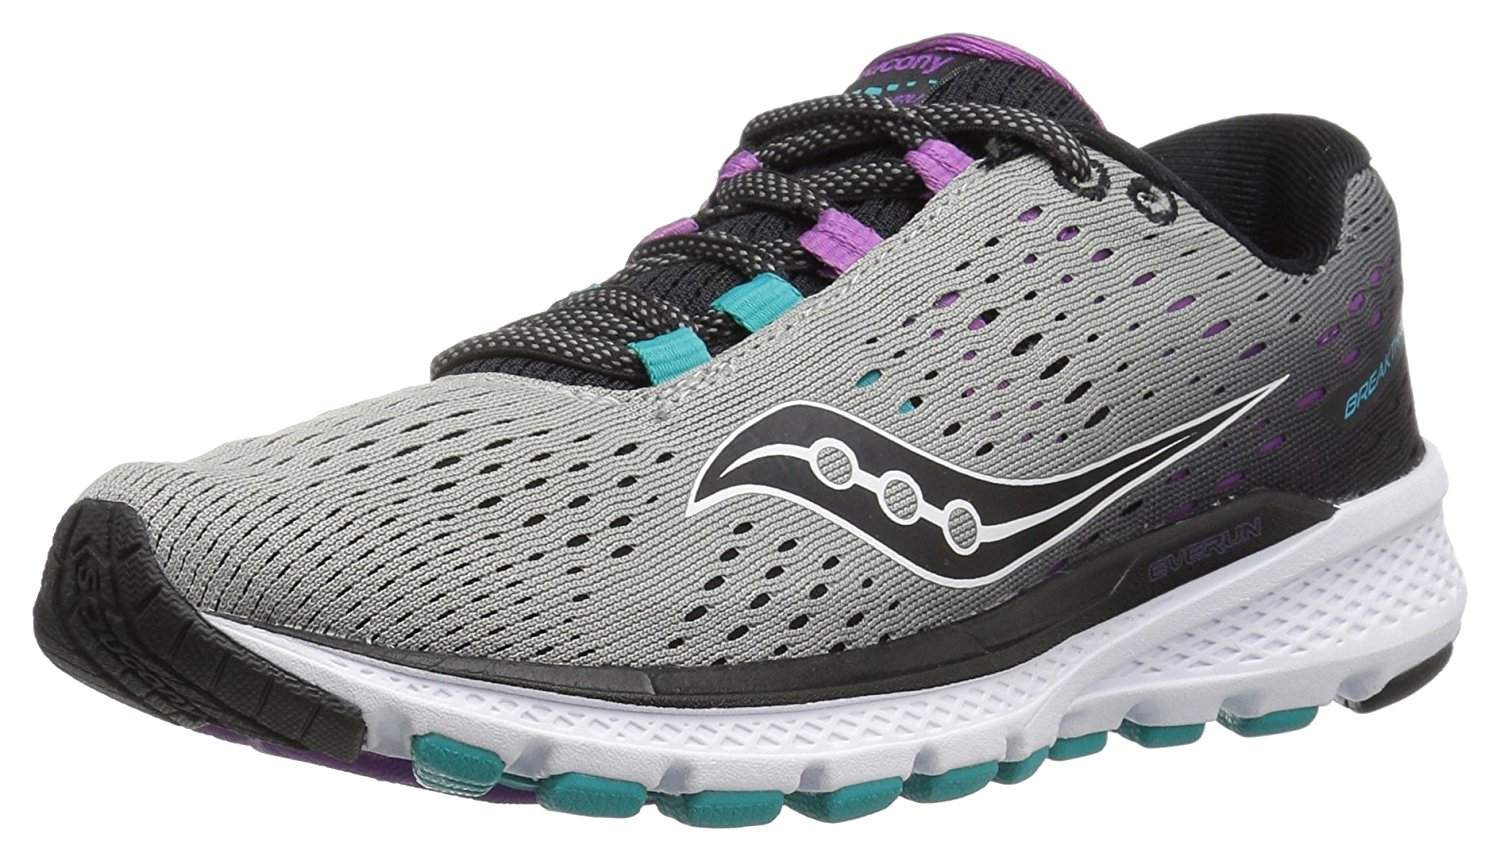 Saucony Women's Breakthru 3 Running Shoe, Grey Purple Teal, 8.5 M US by Saucony